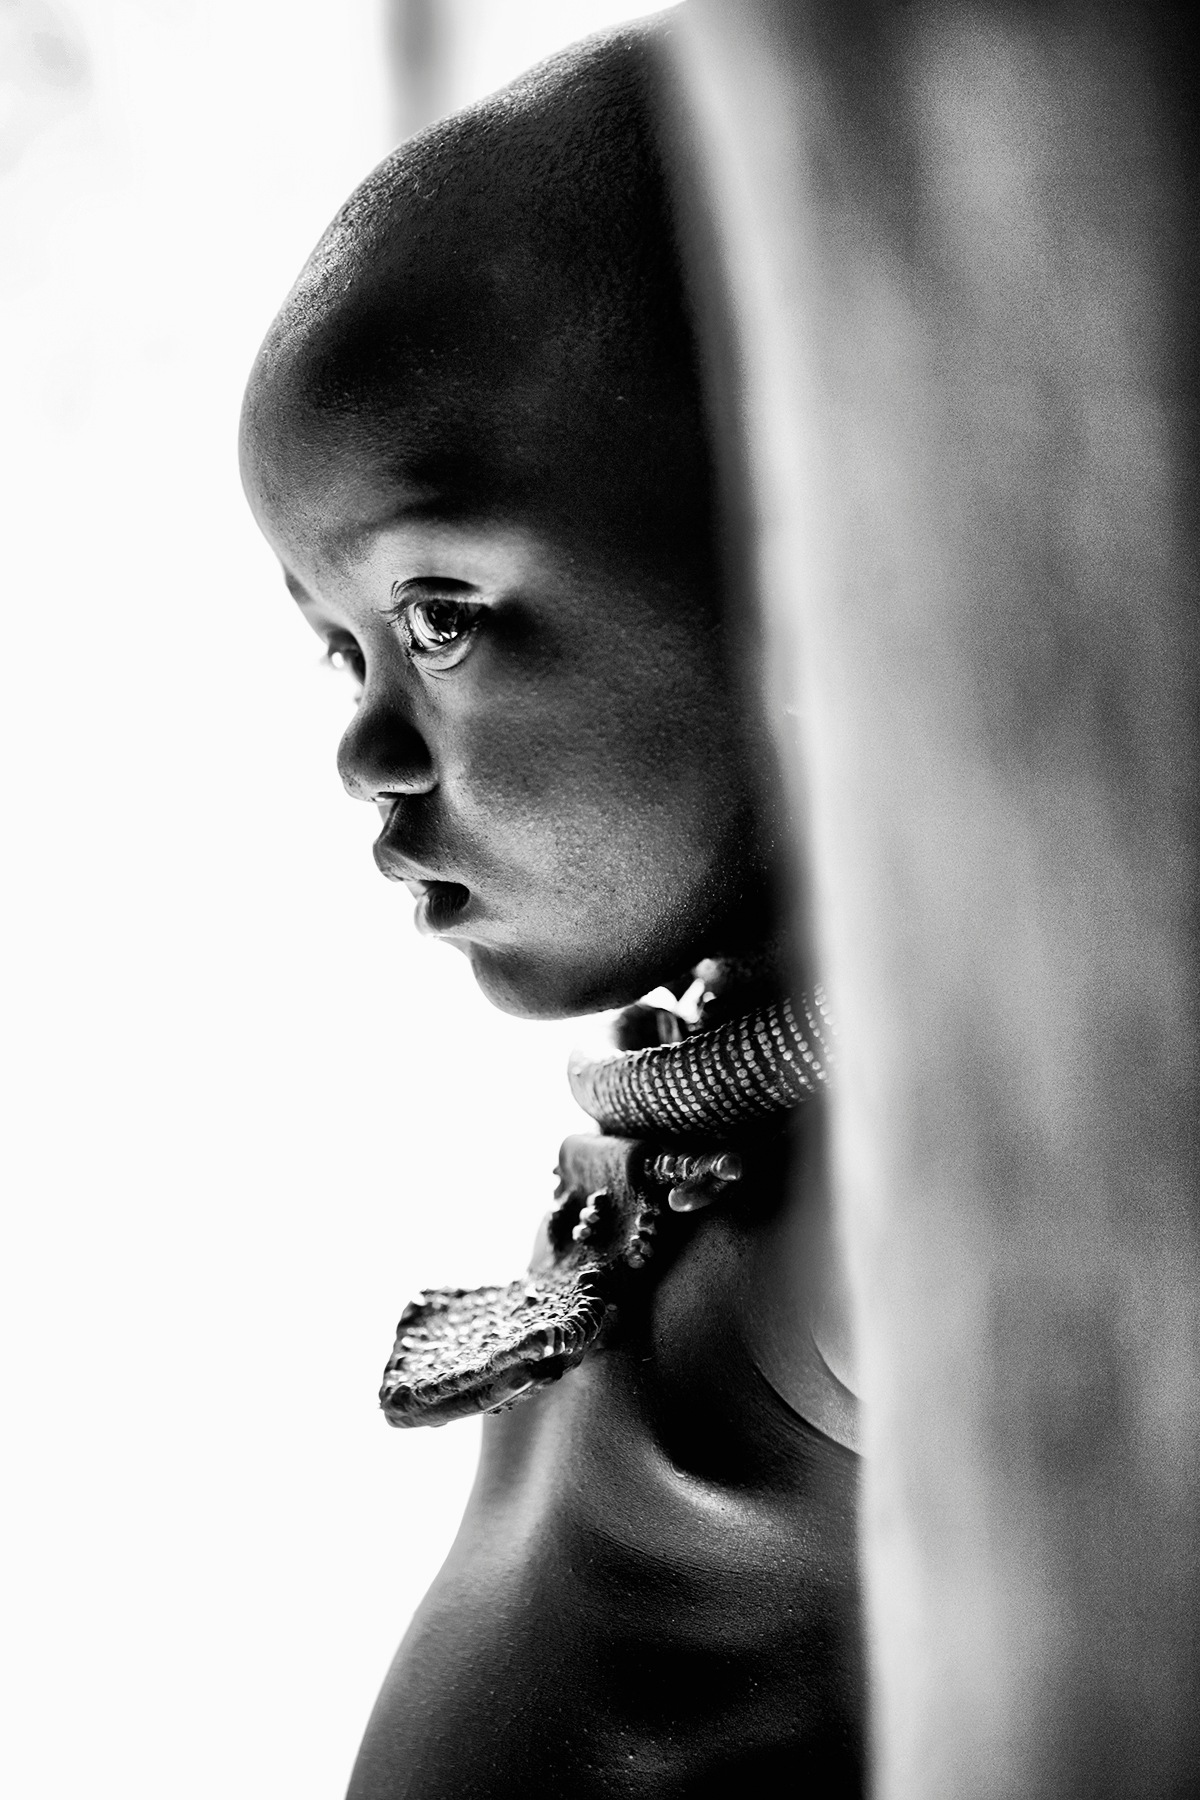 child by Frank Rossbach